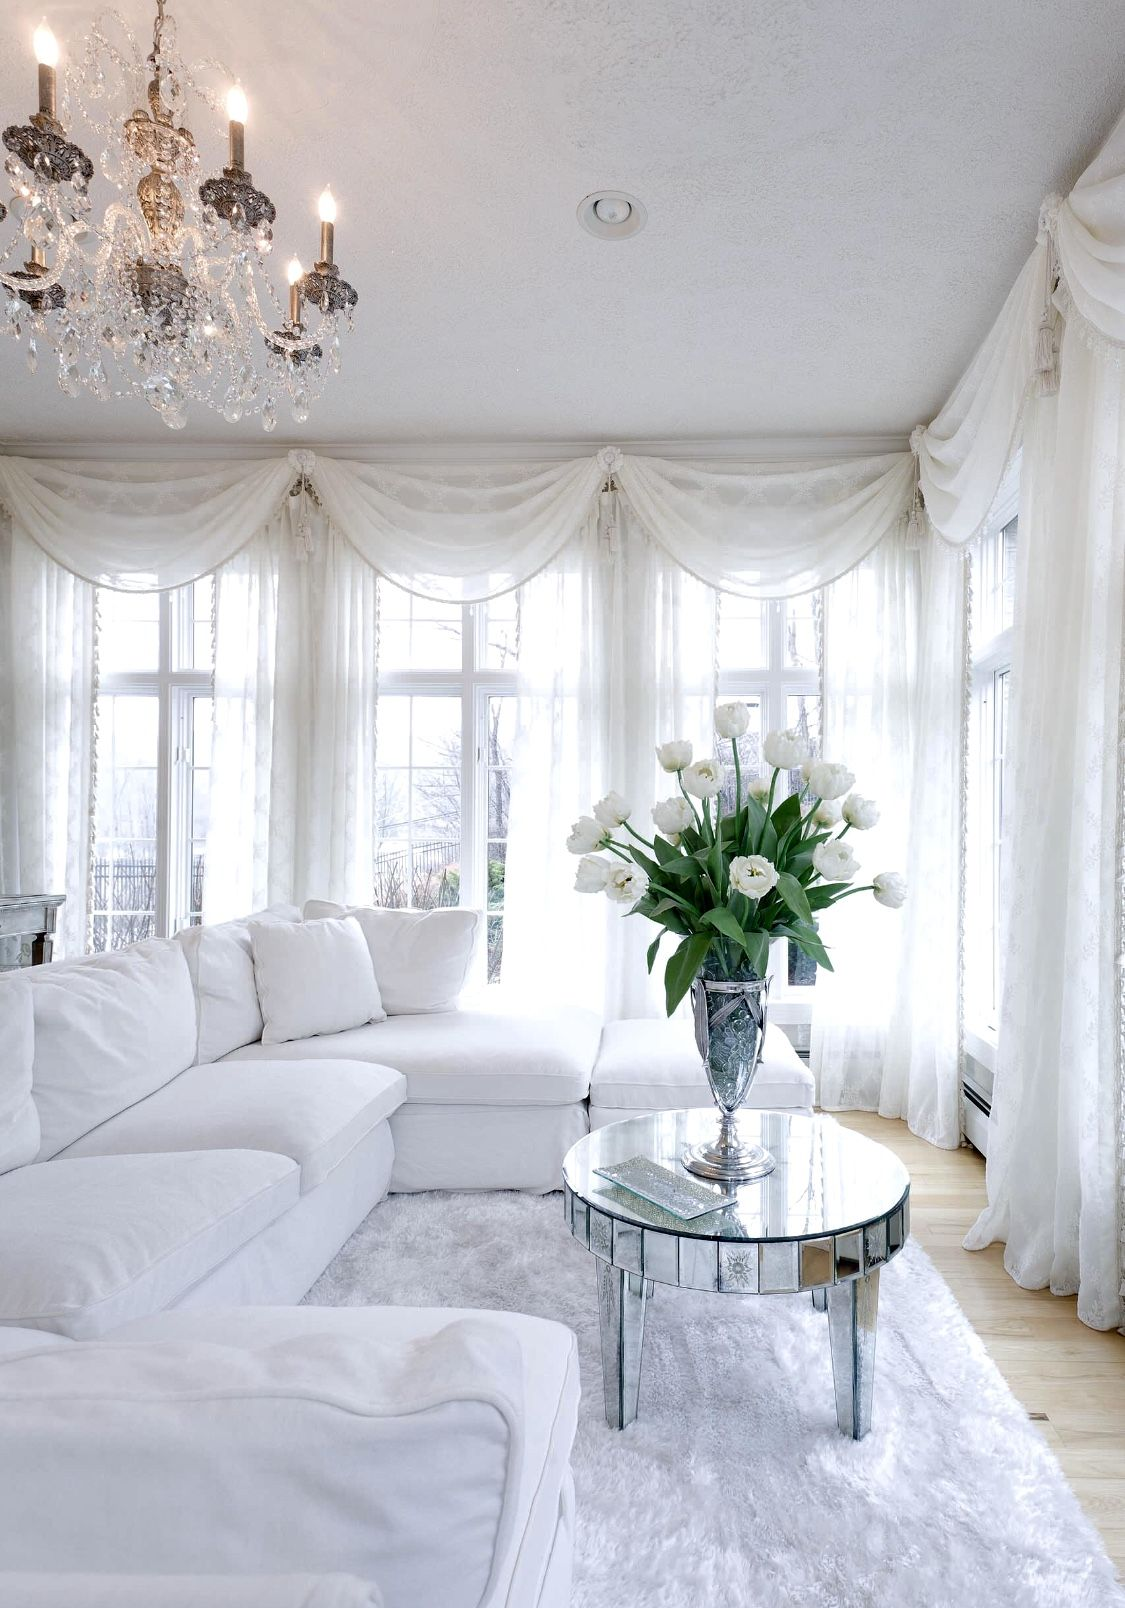 Best All White Living Room Decor With Restoration Hardware 400 x 300